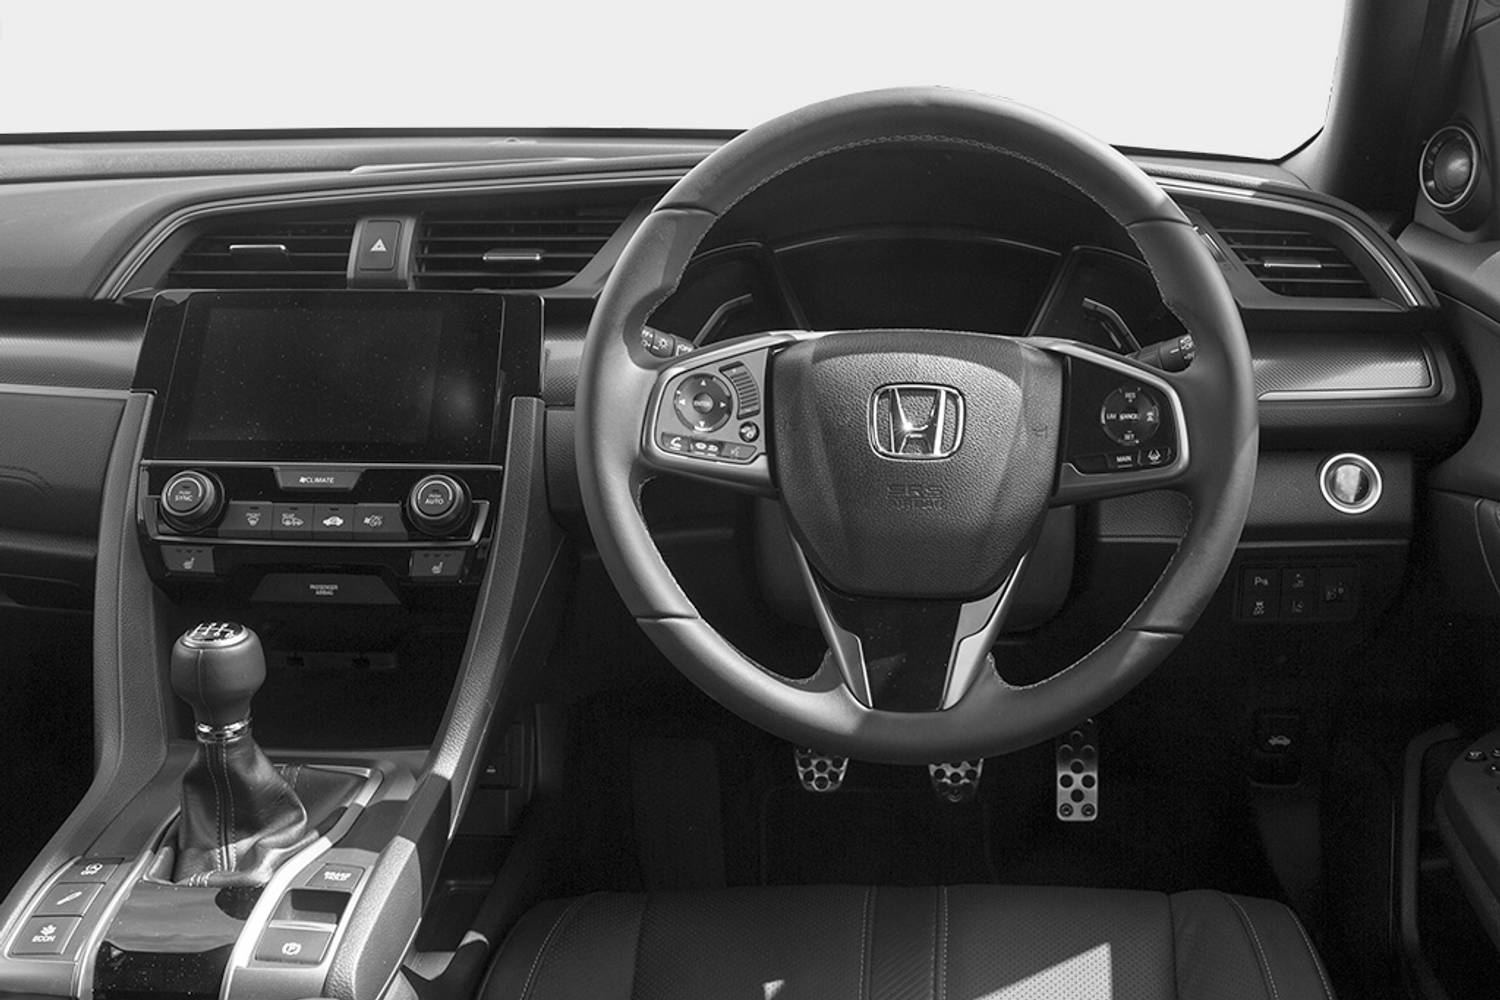 Honda Civic Hatchback 5dr interior